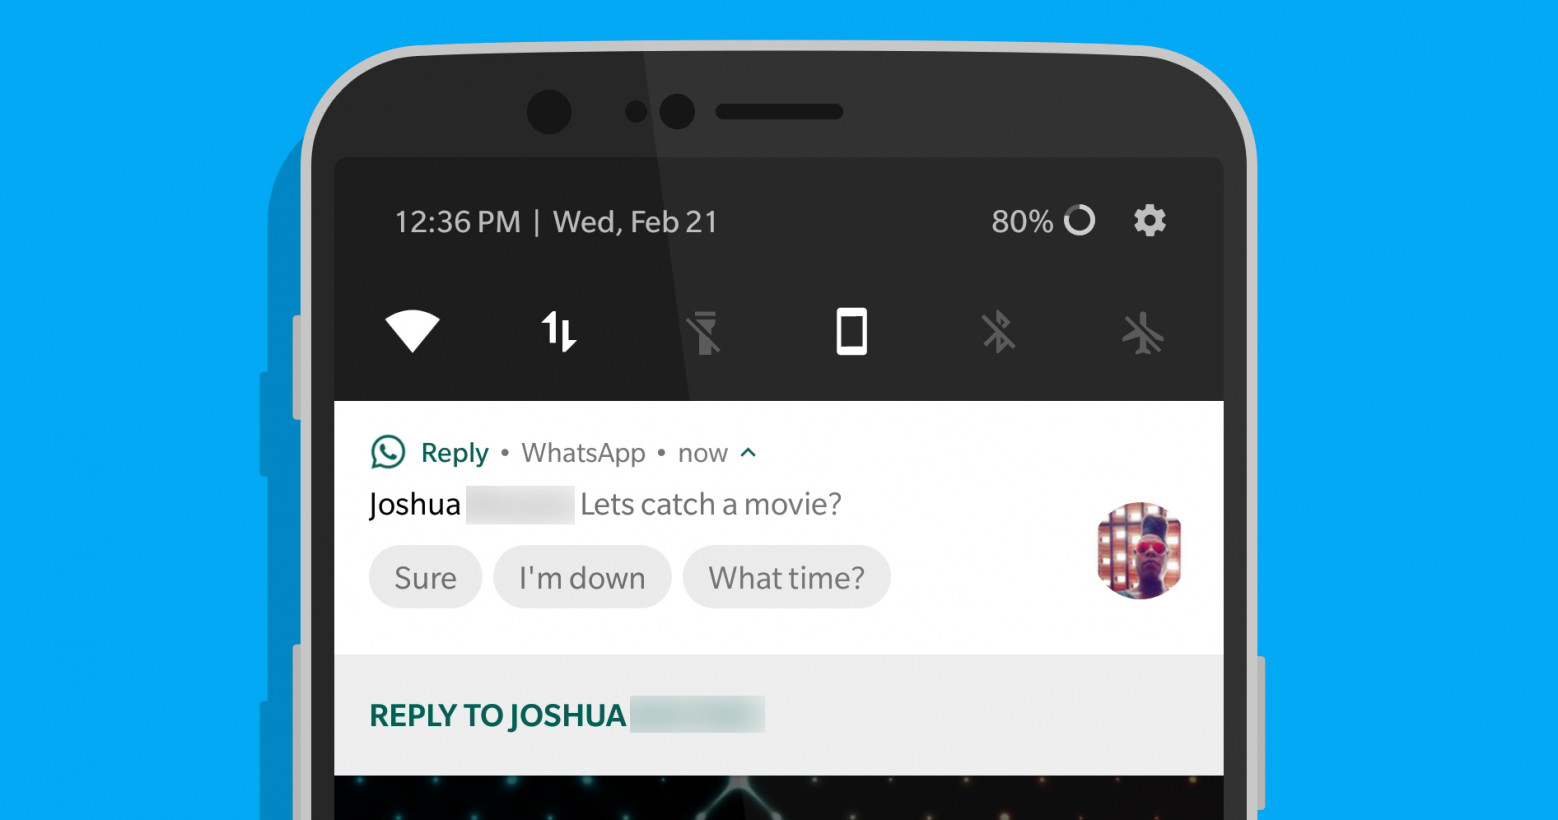 Google's Reply is shaping up to be the messaging assistant of my dreams